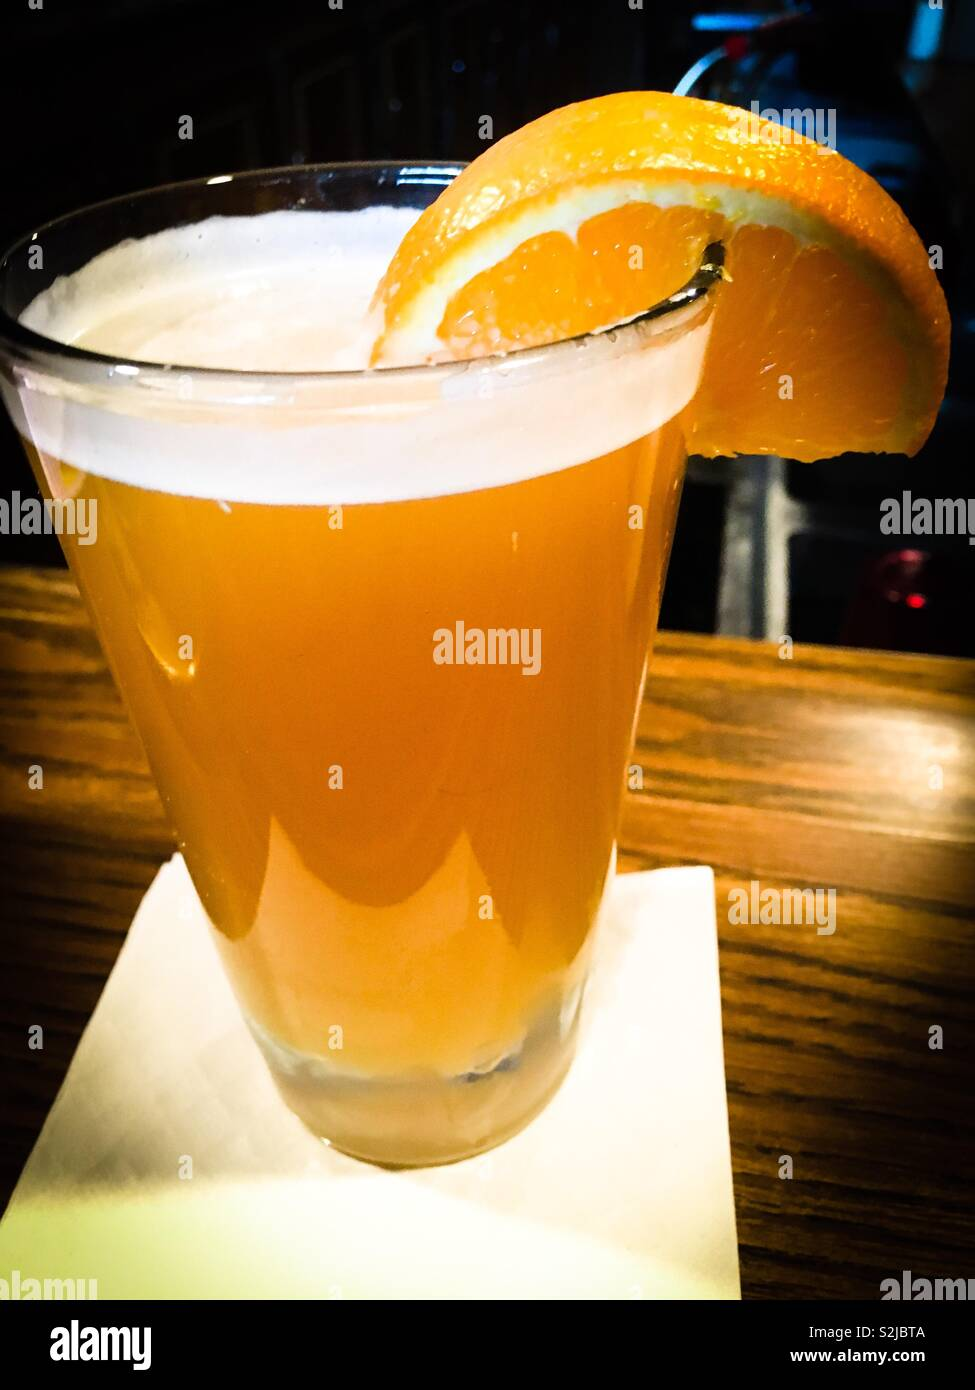 Draft beer at a dive bar in fowlerville michigan - Stock Image